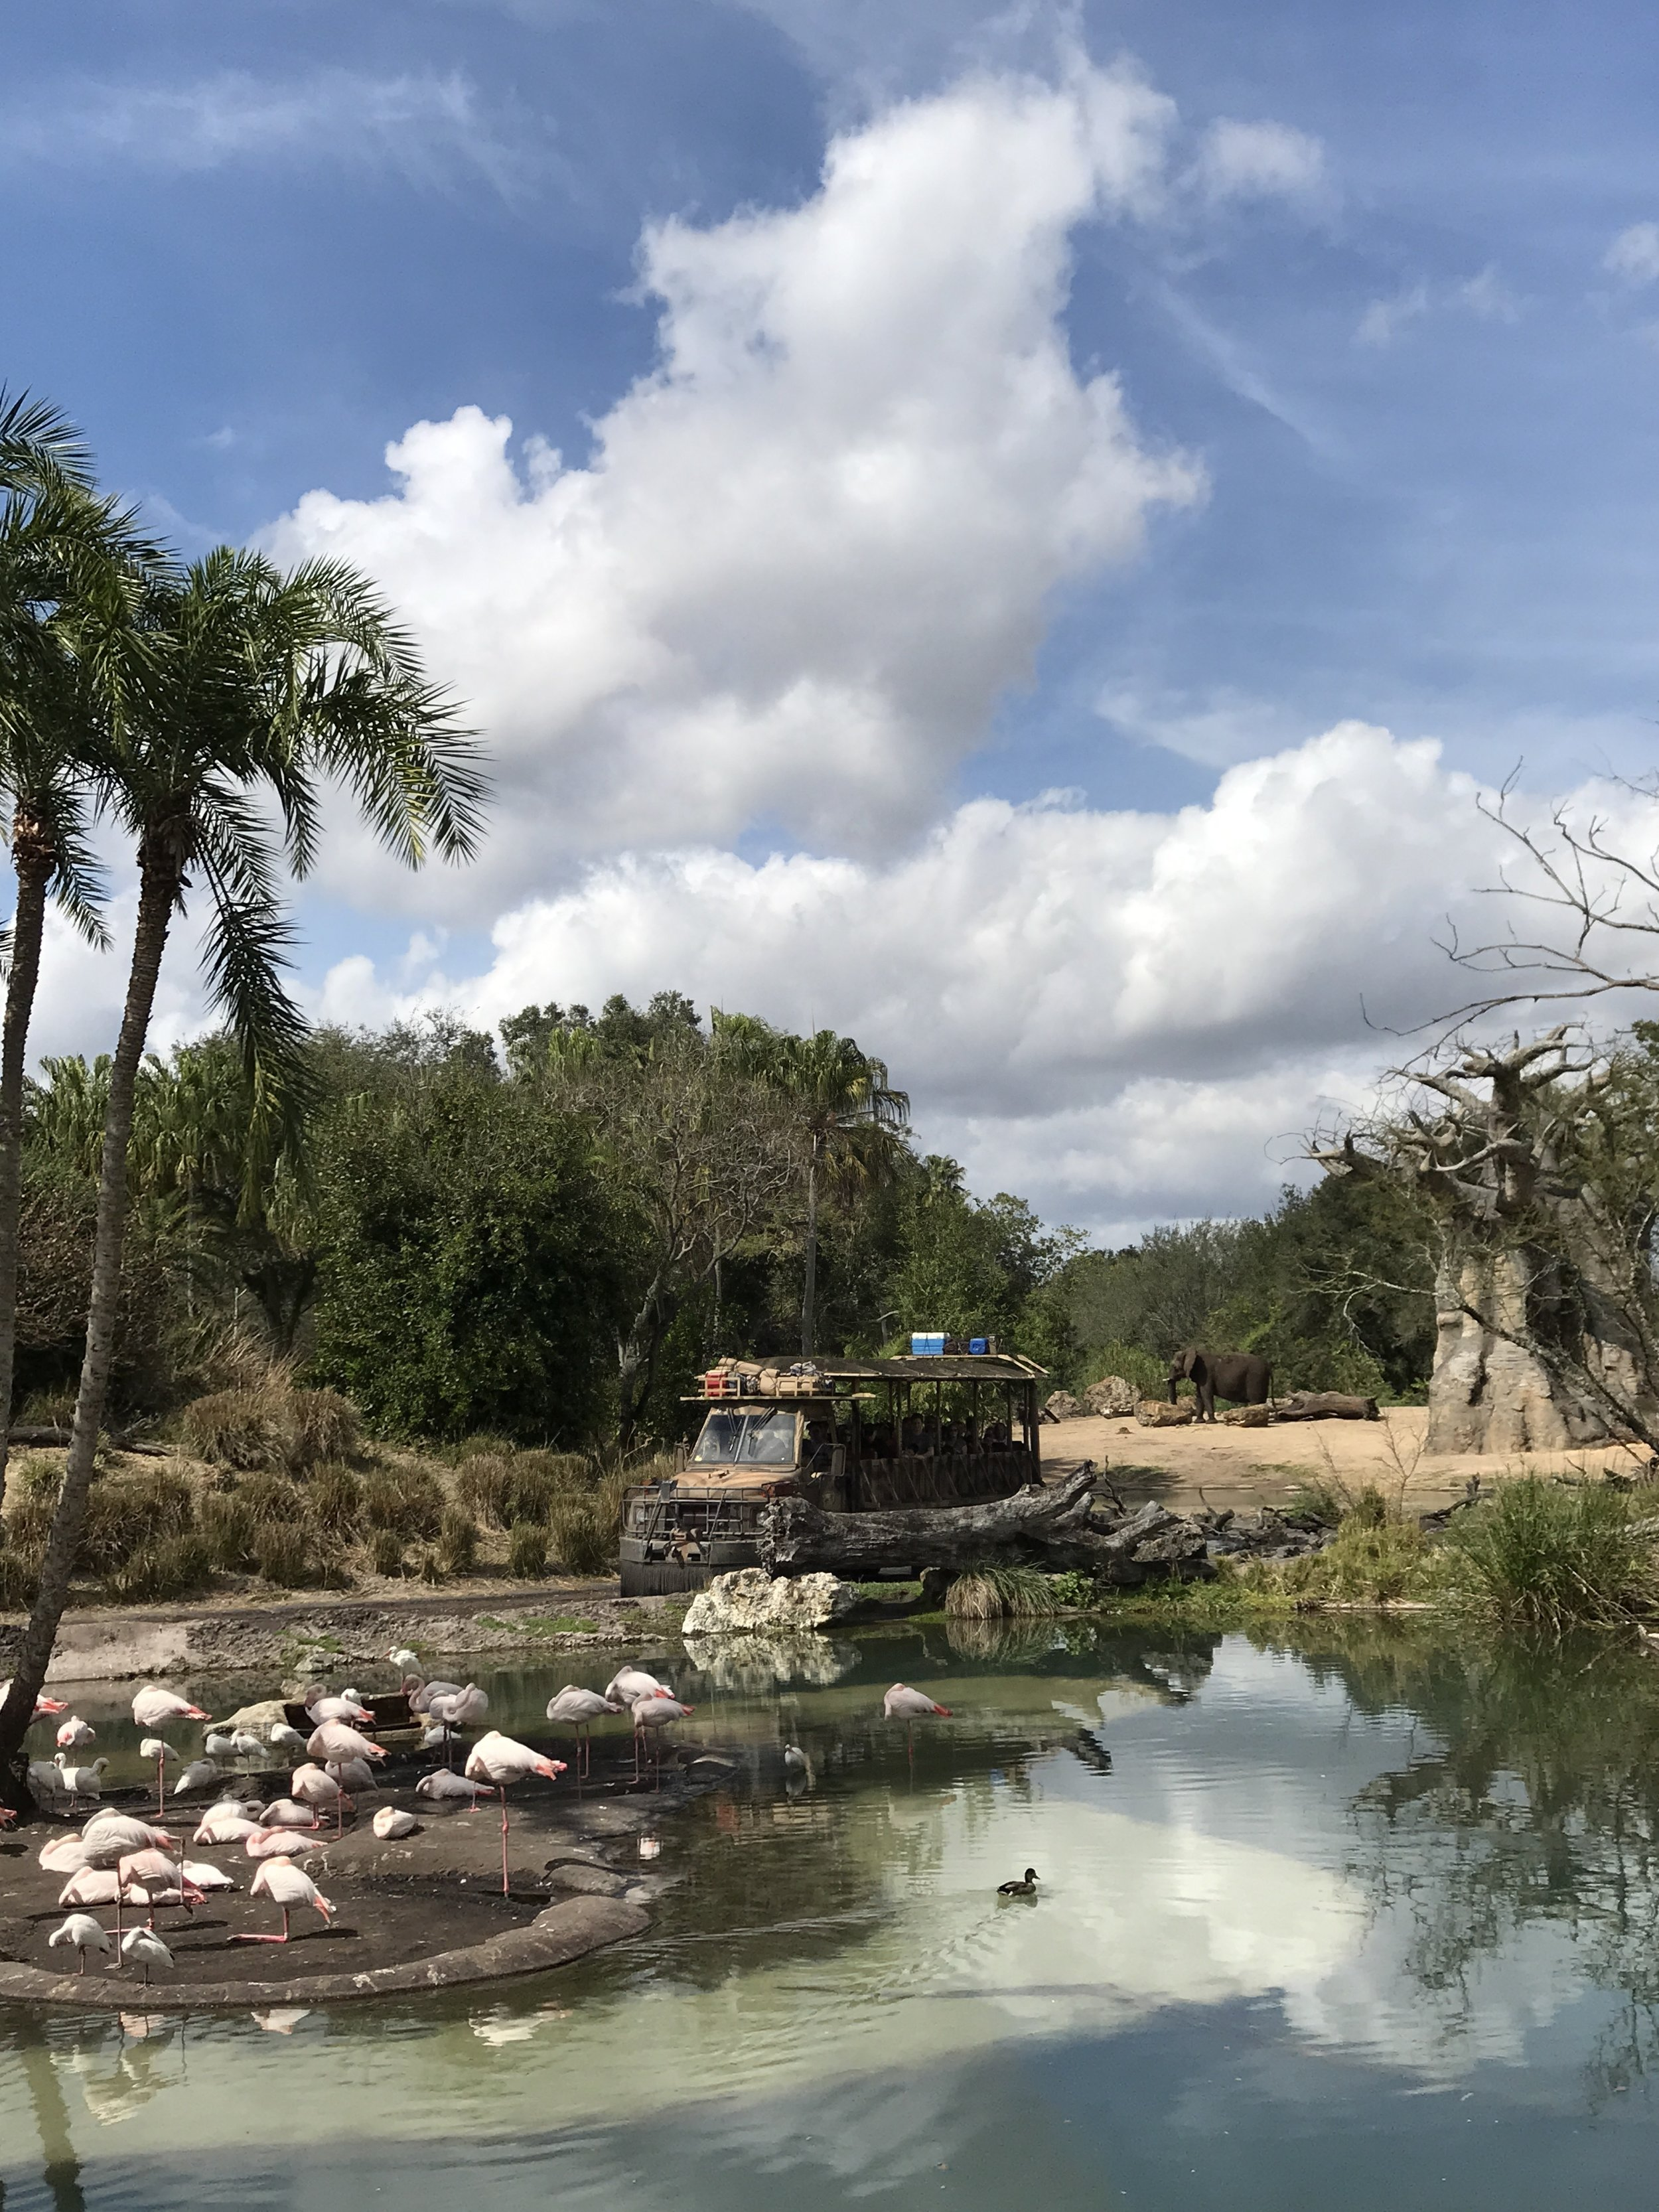 A view from the Animal Kingdom safari